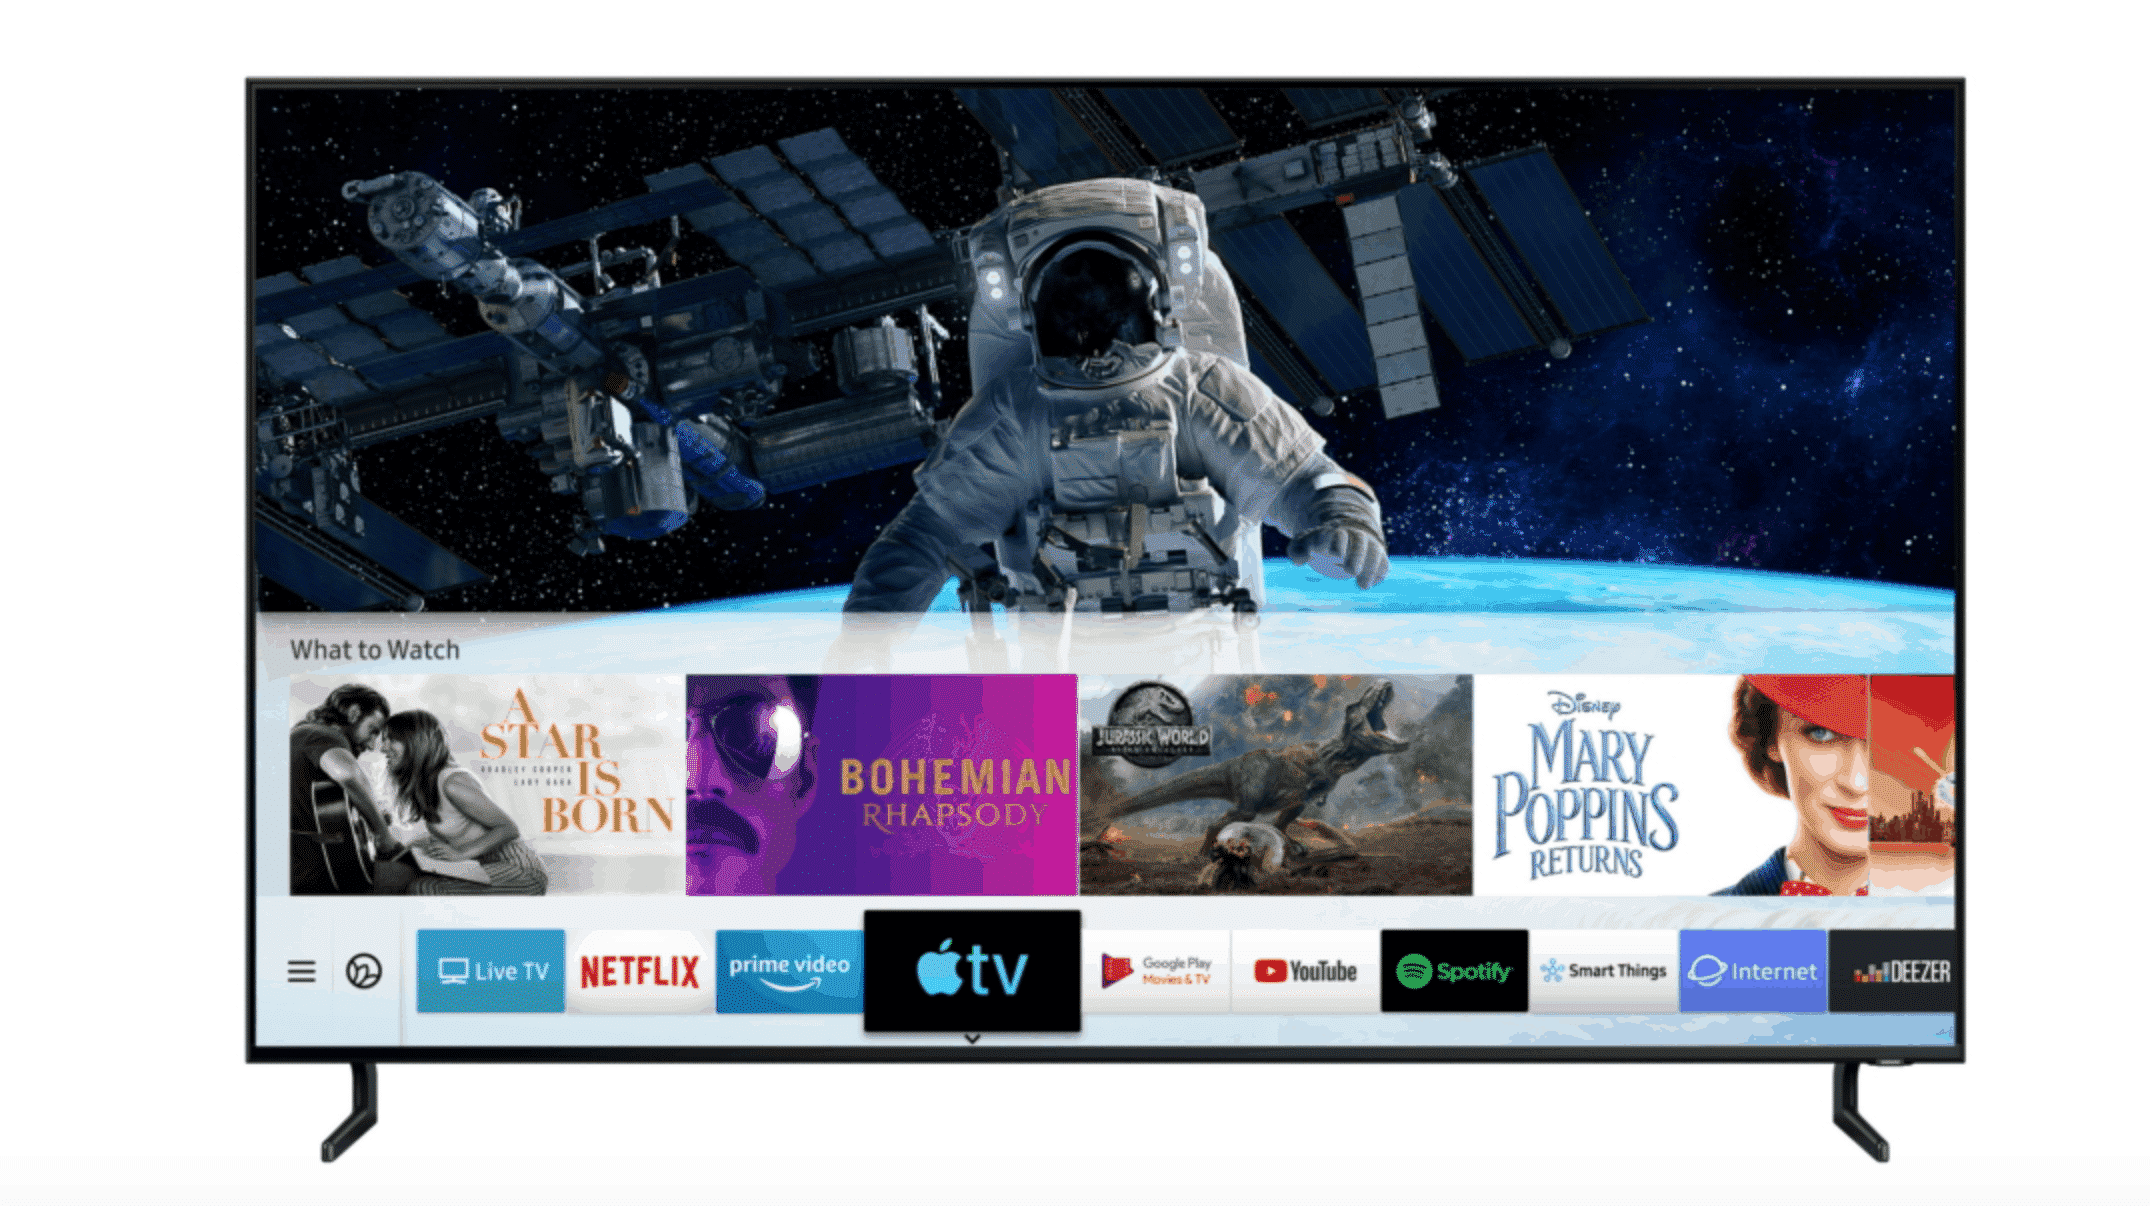 Apple TV App and AirPlay 2 on Samsung Smart TV